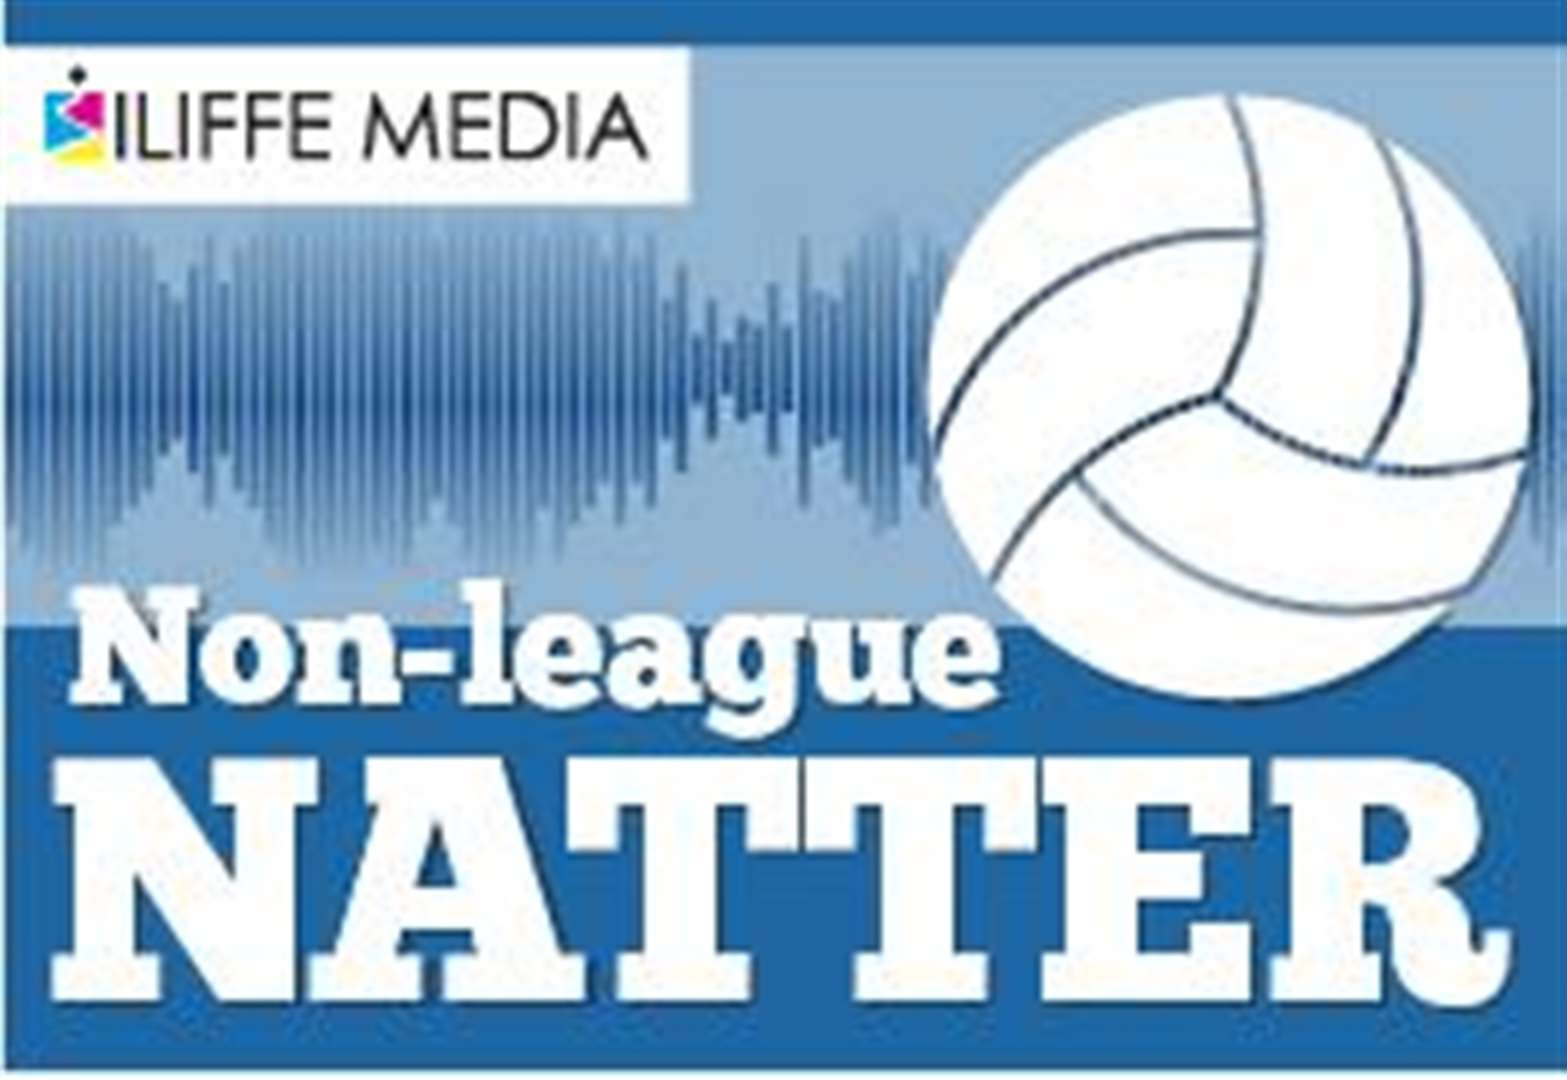 Non-League Natter Podcast: Ep 14